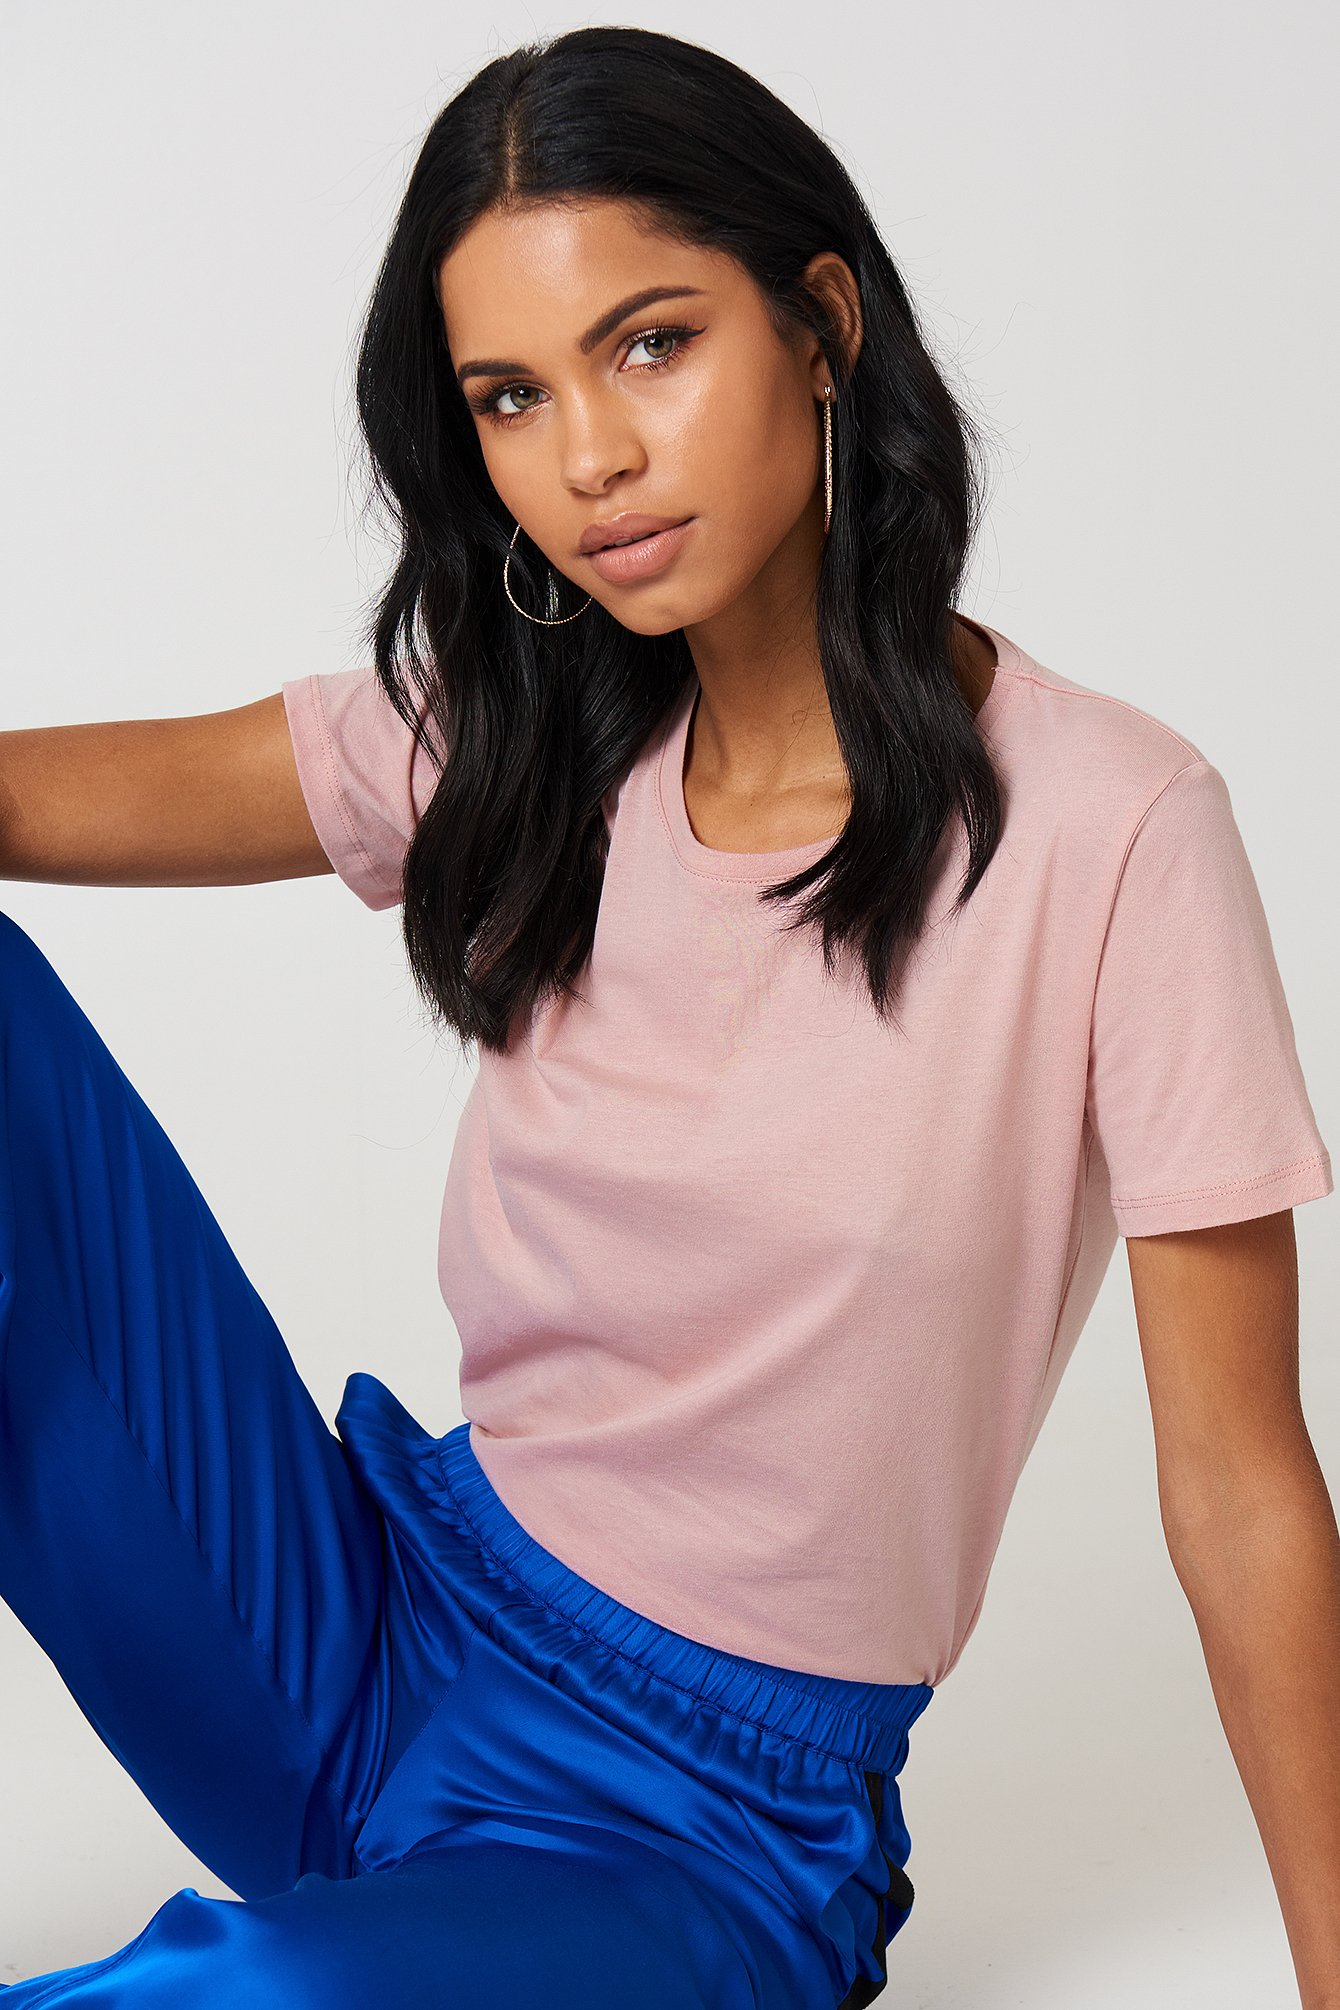 The Basic Tee by NA-KD Basic features a round slightly ribbed neckline, short sleeves, and a straight fit.